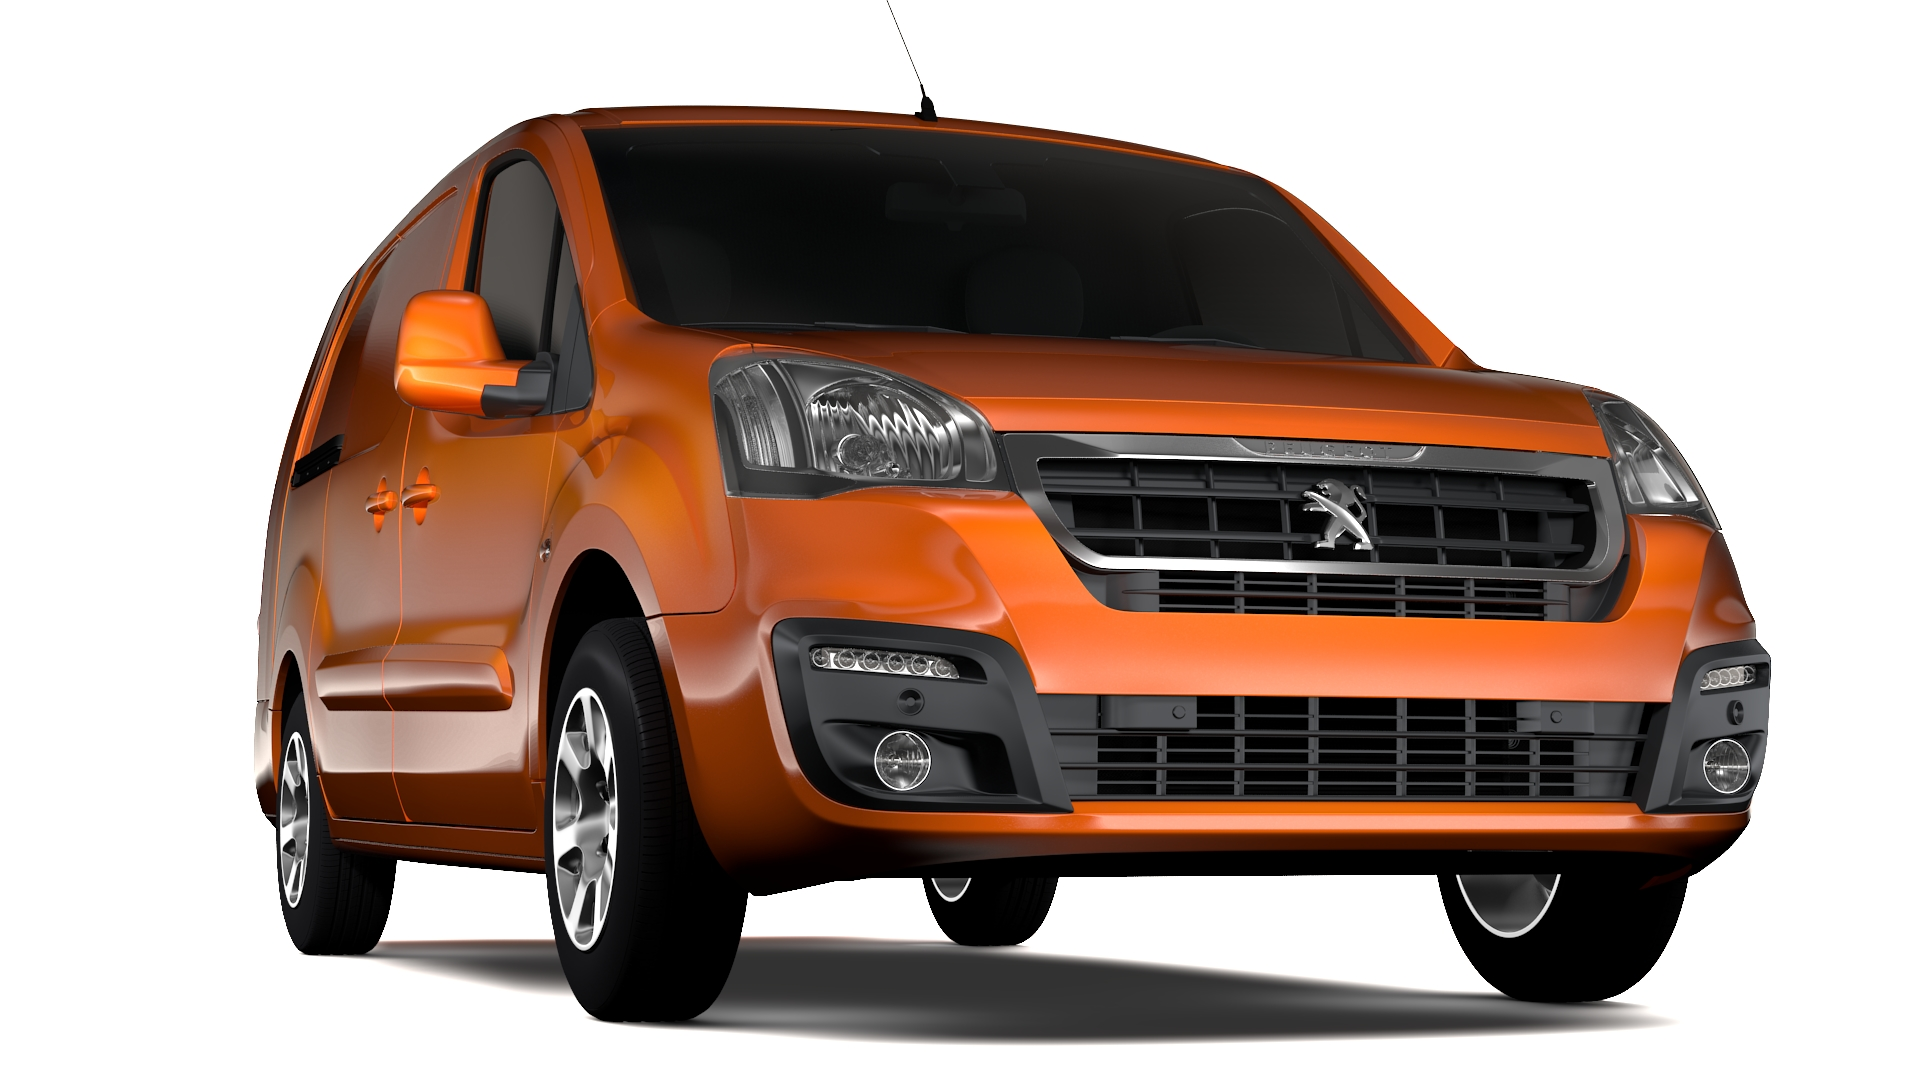 peugeot partner van l2 2017 3d model 3ds max fbx c4d